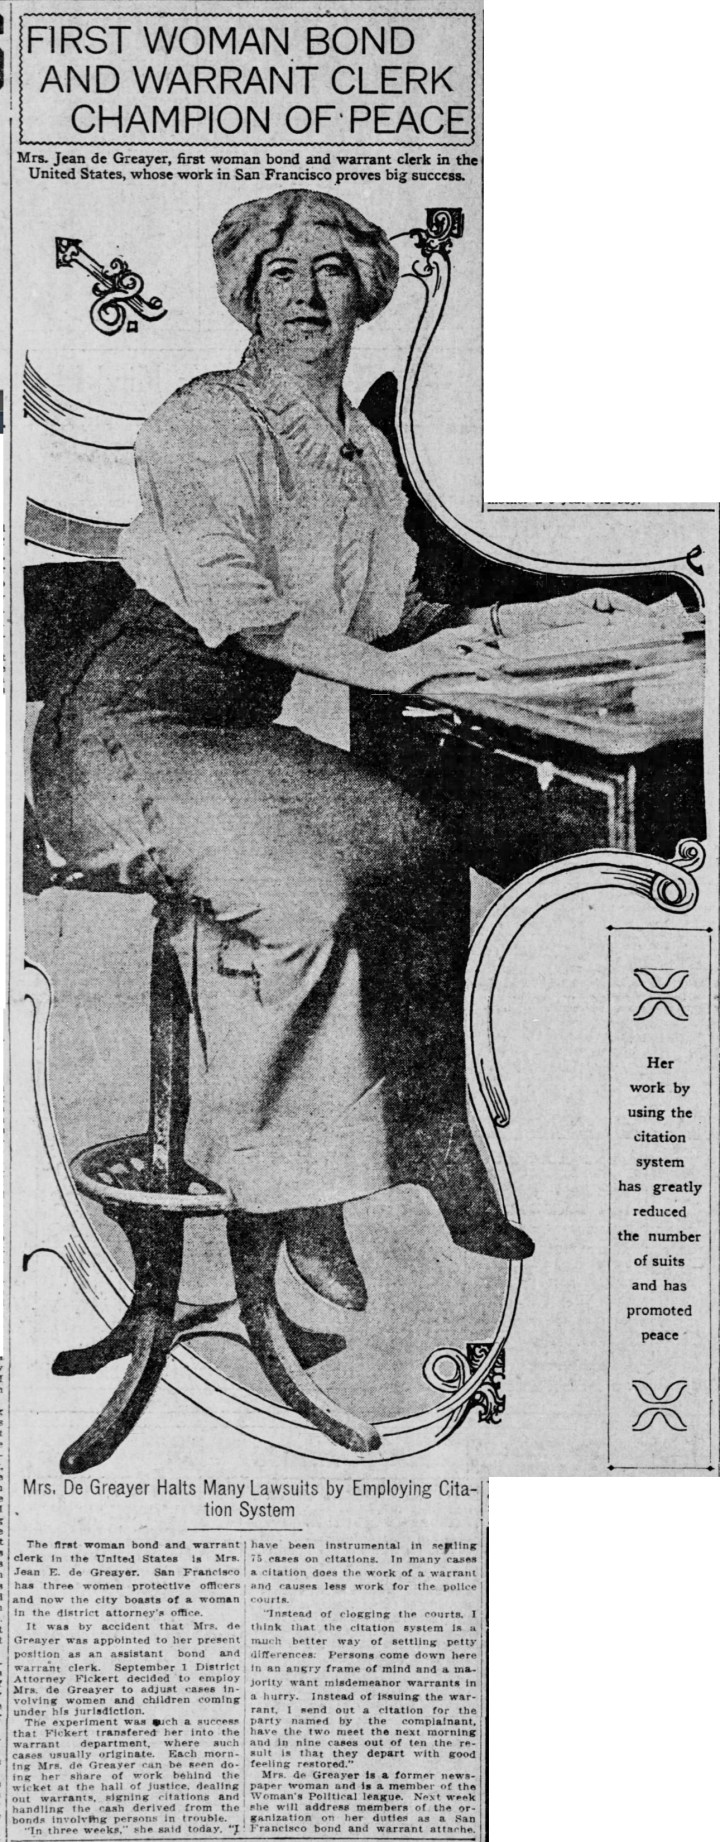 Jean de Greayer appointed bond and warrant clerk. SF Call, 29 Dec 1913, p.9.